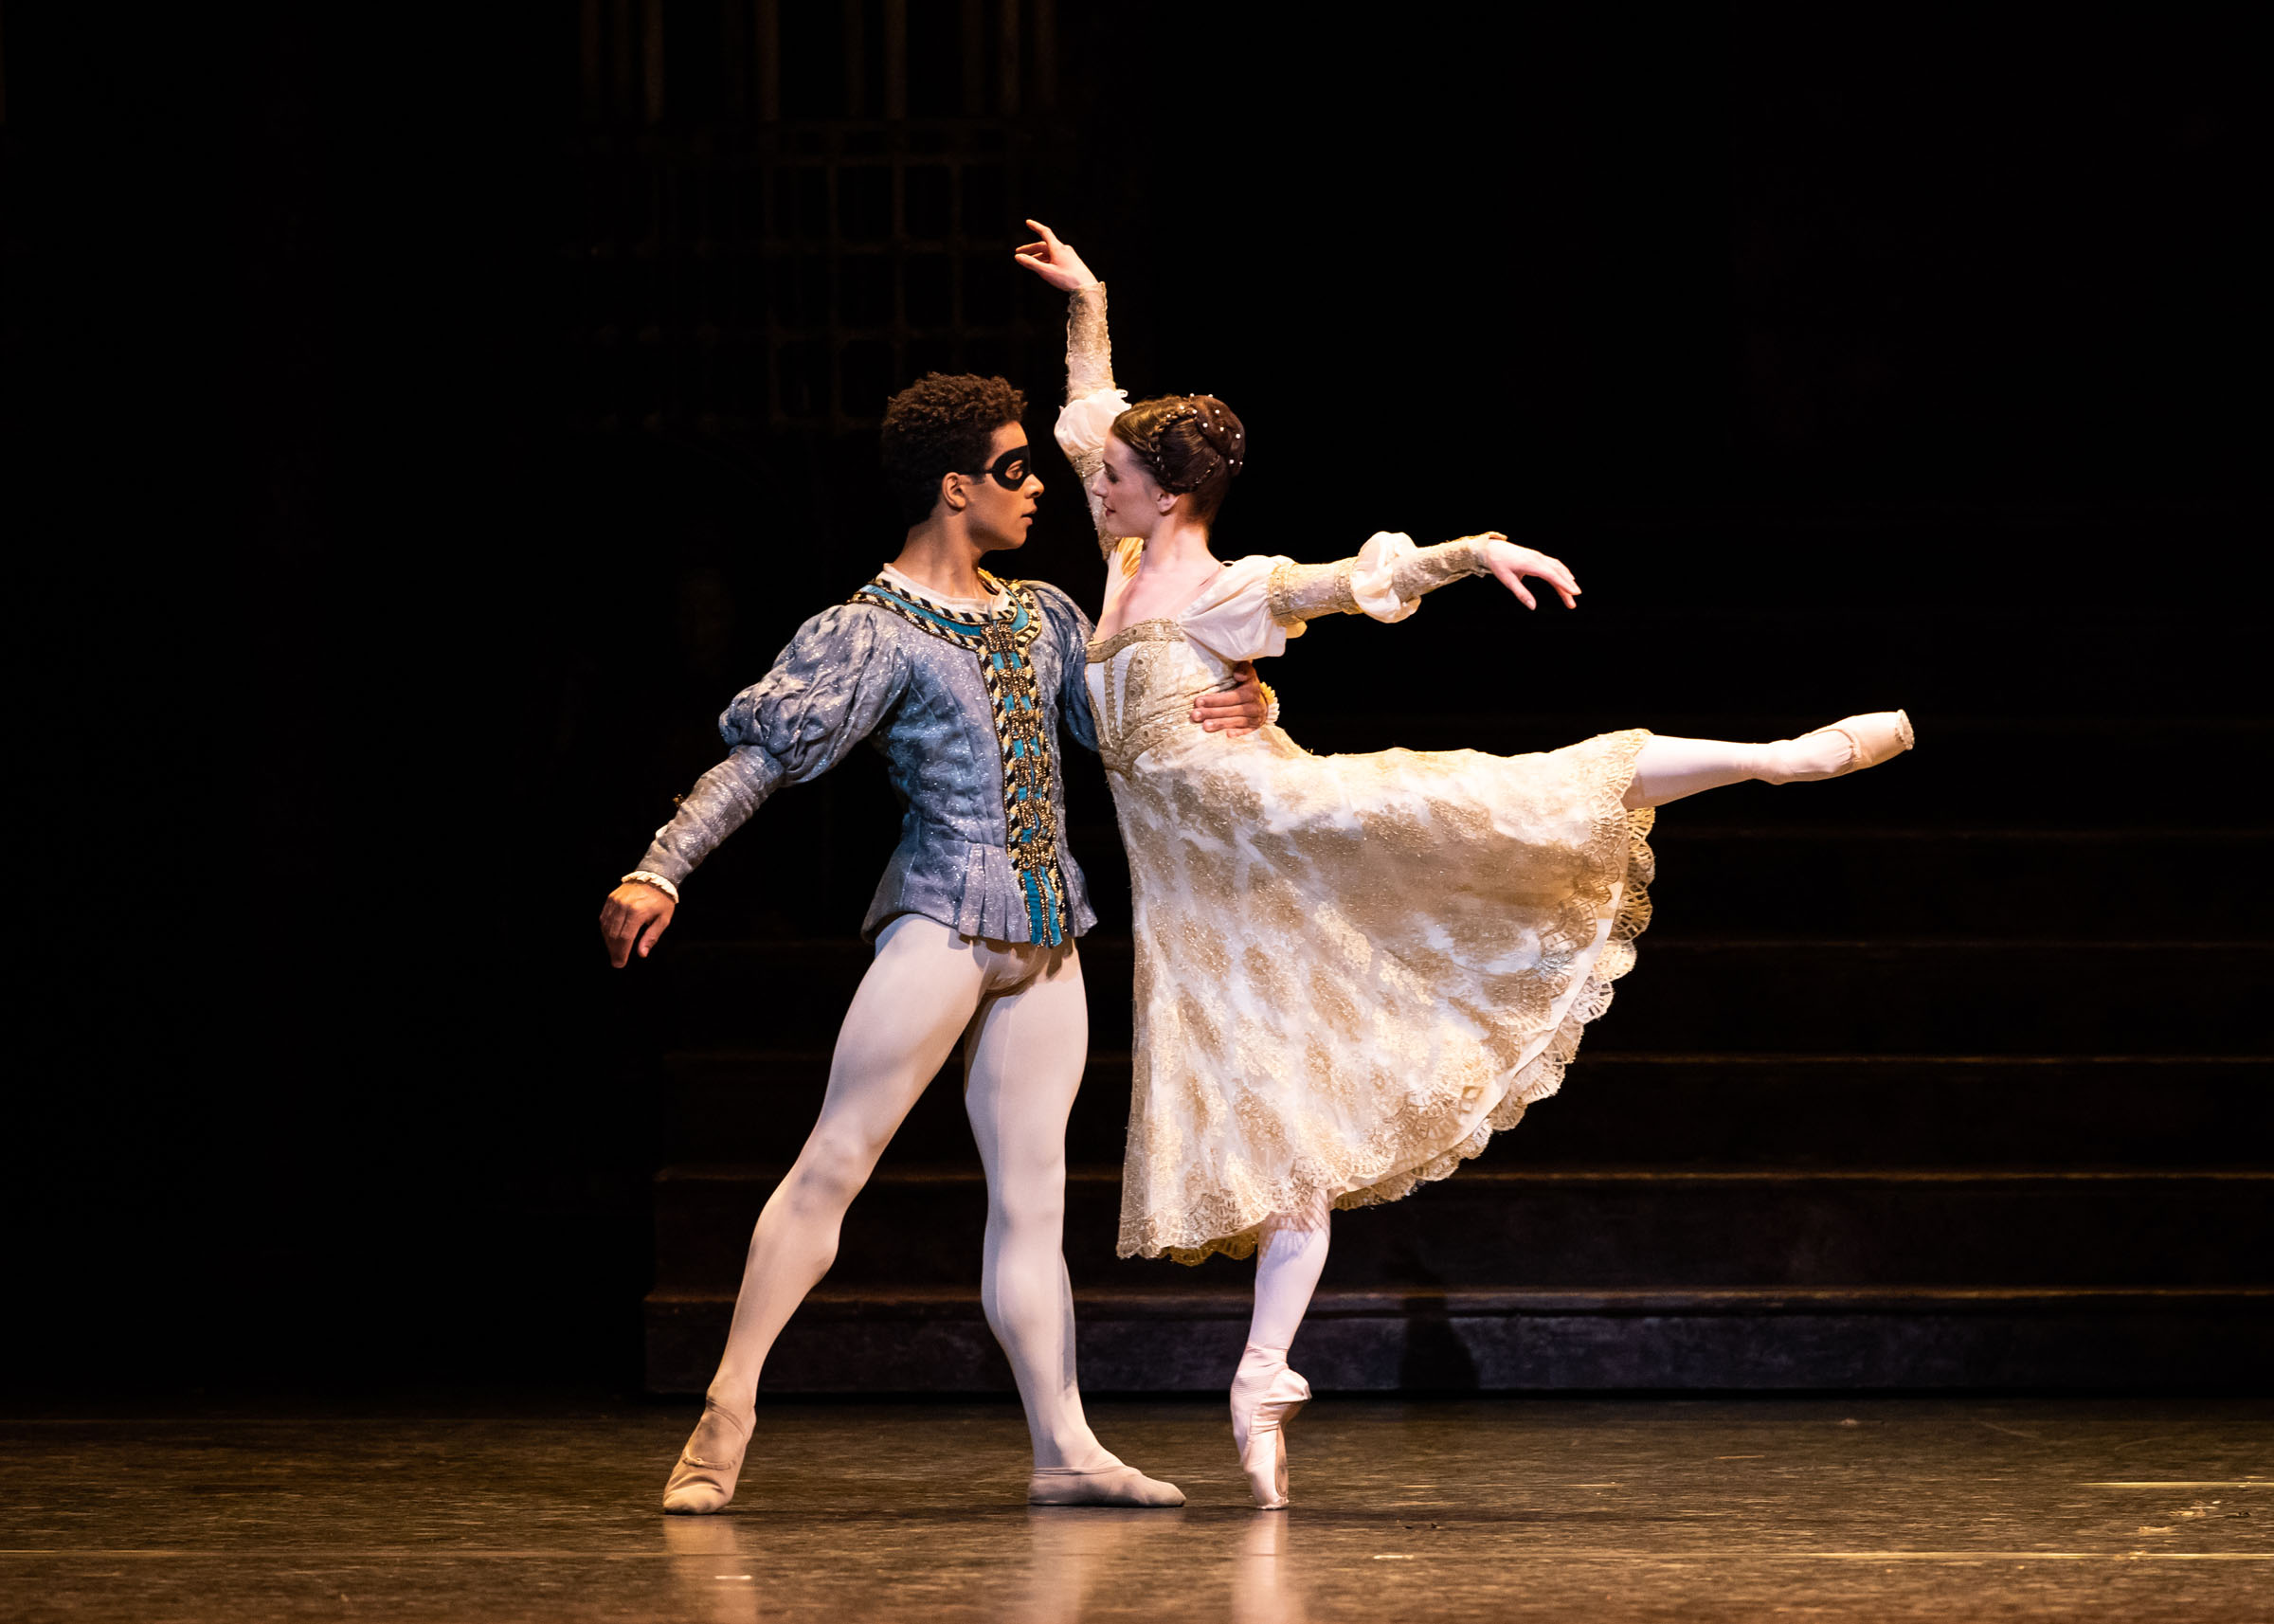 Marcelino Sambé as Romeo and Anna Rose O'Sullivan as Juliet in Kenneth MacMillan's production of Romeo and Julie